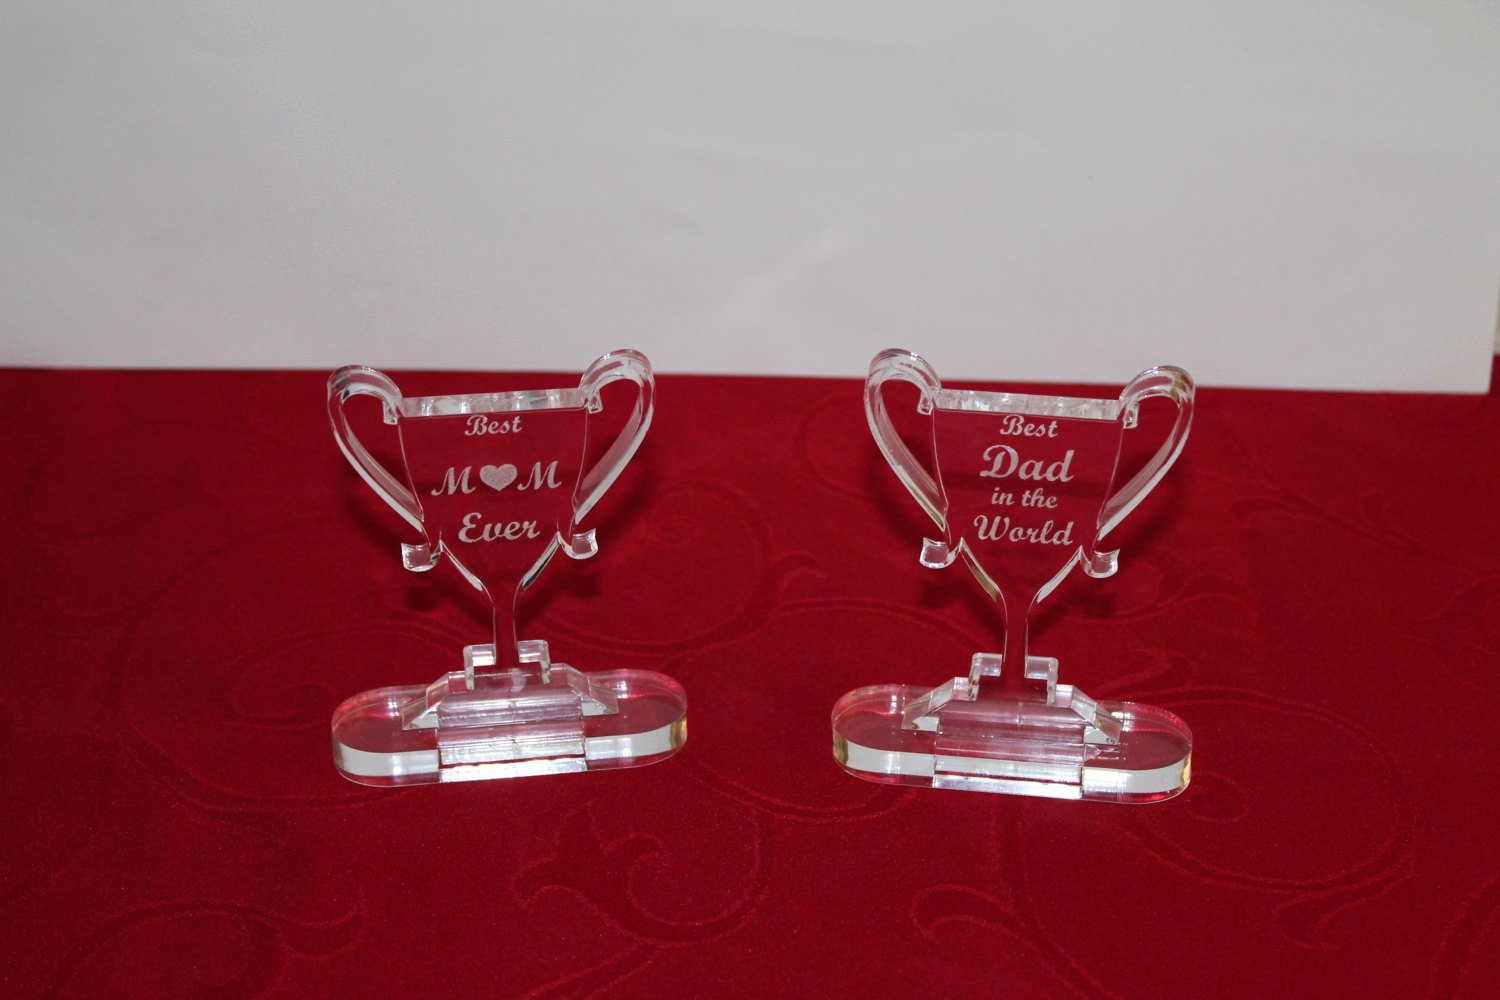 Best Mom Ever Trophy Awesome Personalised Trophy Best Mum Gift for Mum Best Dad Ever